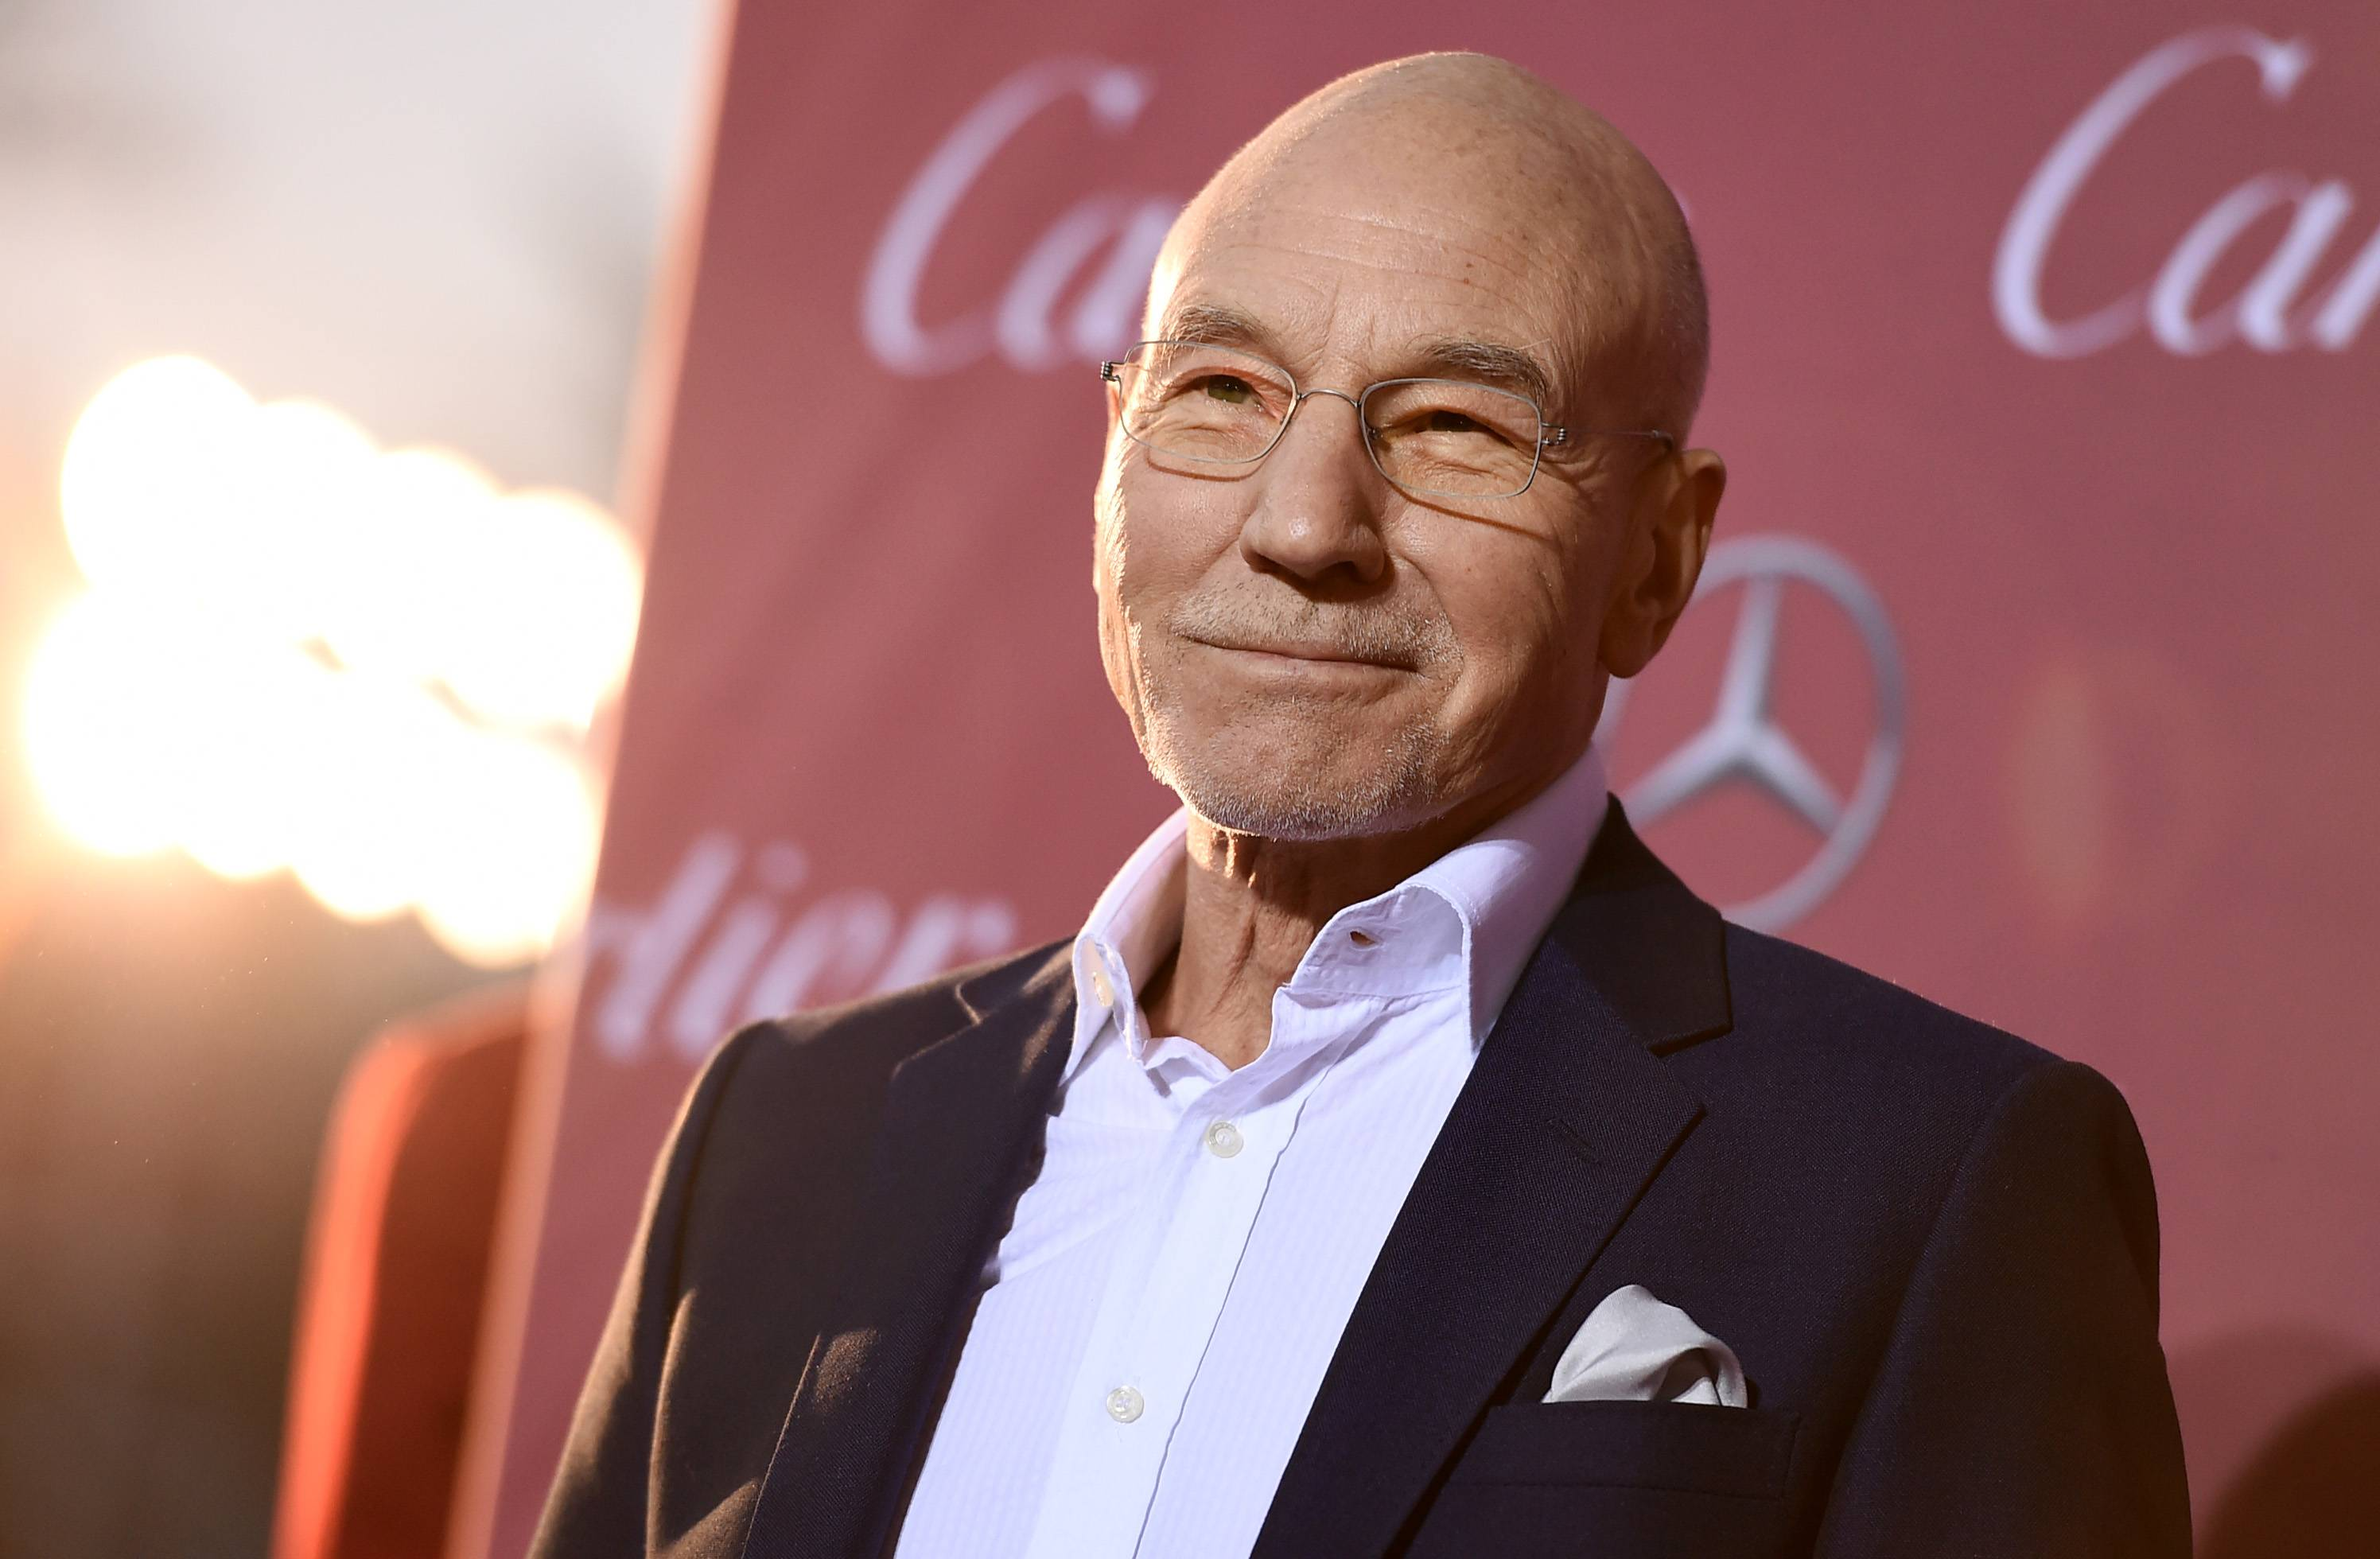 Patrick Stewart arrives at the 26th annual Palm Springs International Film Festival Awards Gala on Saturday, Jan. 3, 2015, in Palm Springs, Calif.